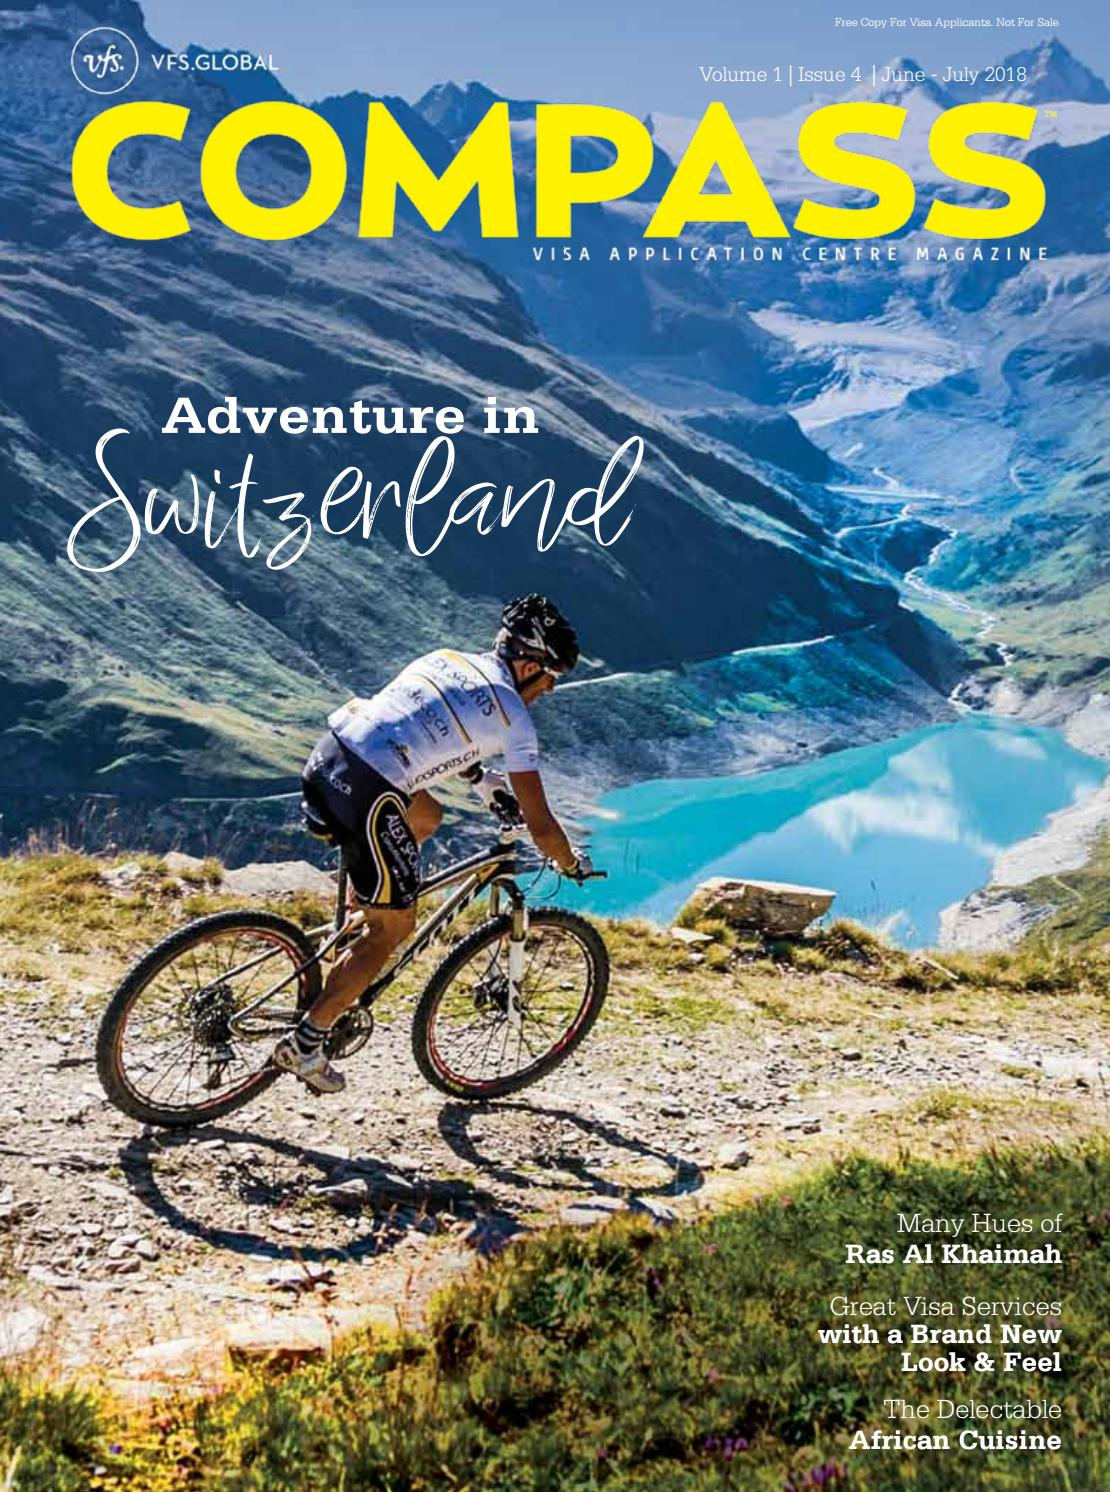 VFS Global COMPASS (India Edition) June-July 2018 by